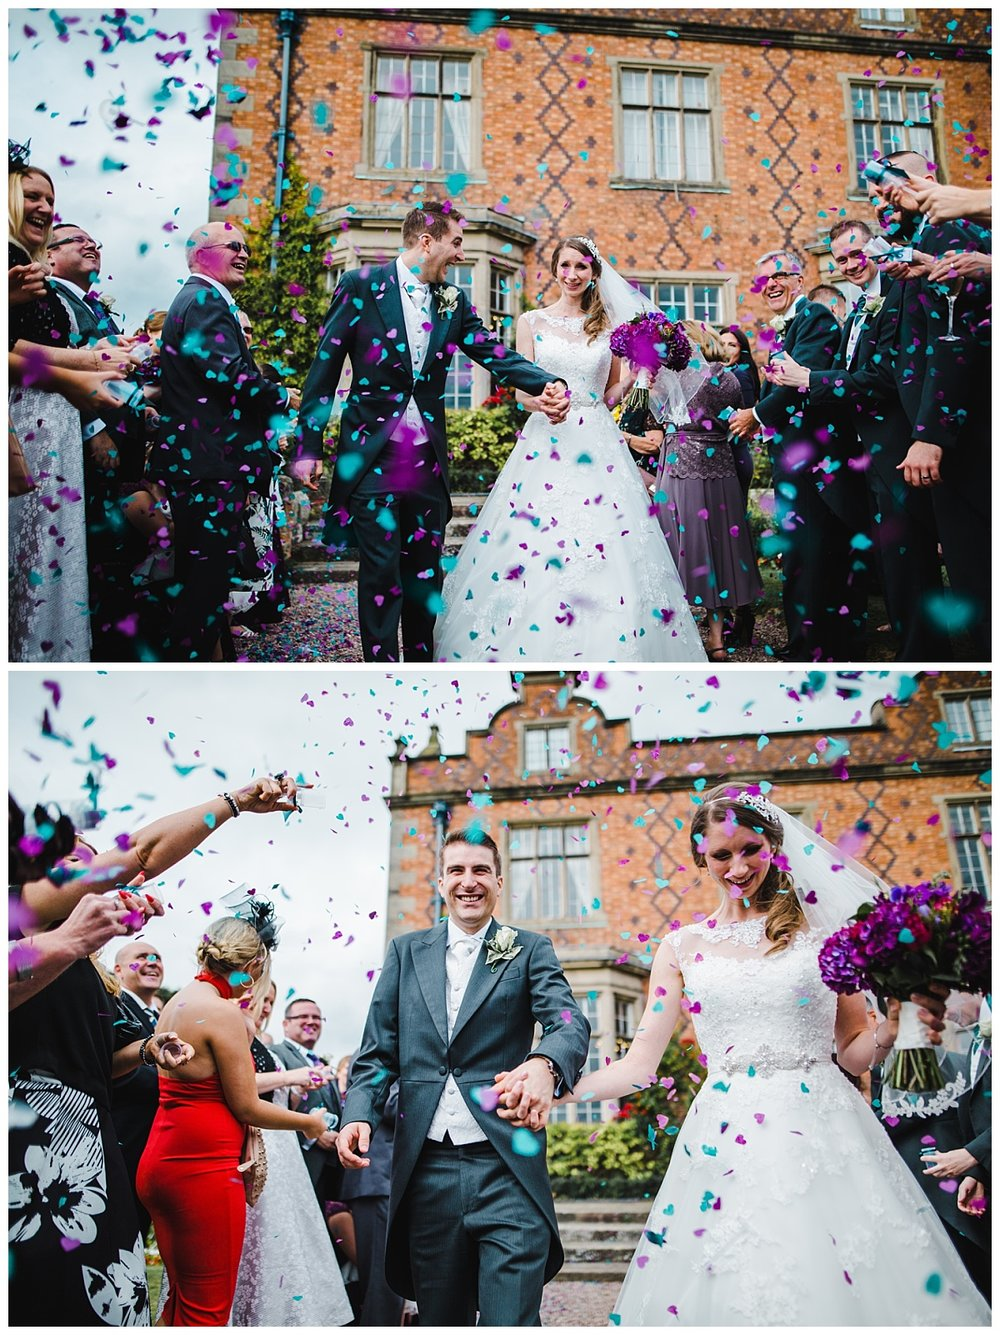 Confetti full of air as the bride and groom walk- Happy wedding gphotogprhay for the Wedding at Willington Hall Hotel